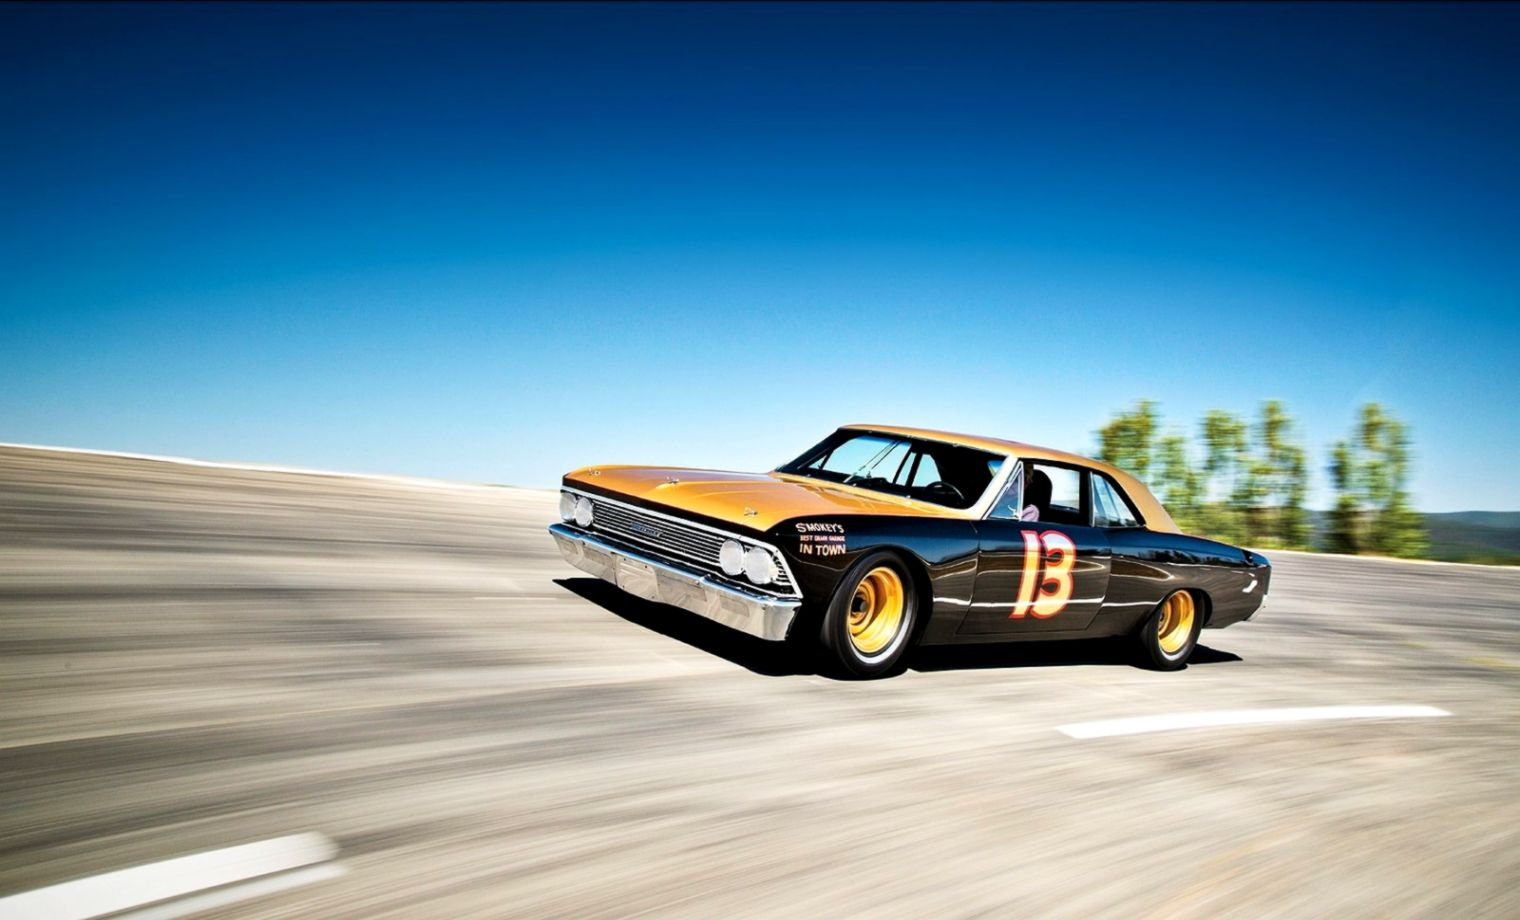 1966 Chevrolet Chevelle Wallpaper and Background Image 1600x1000